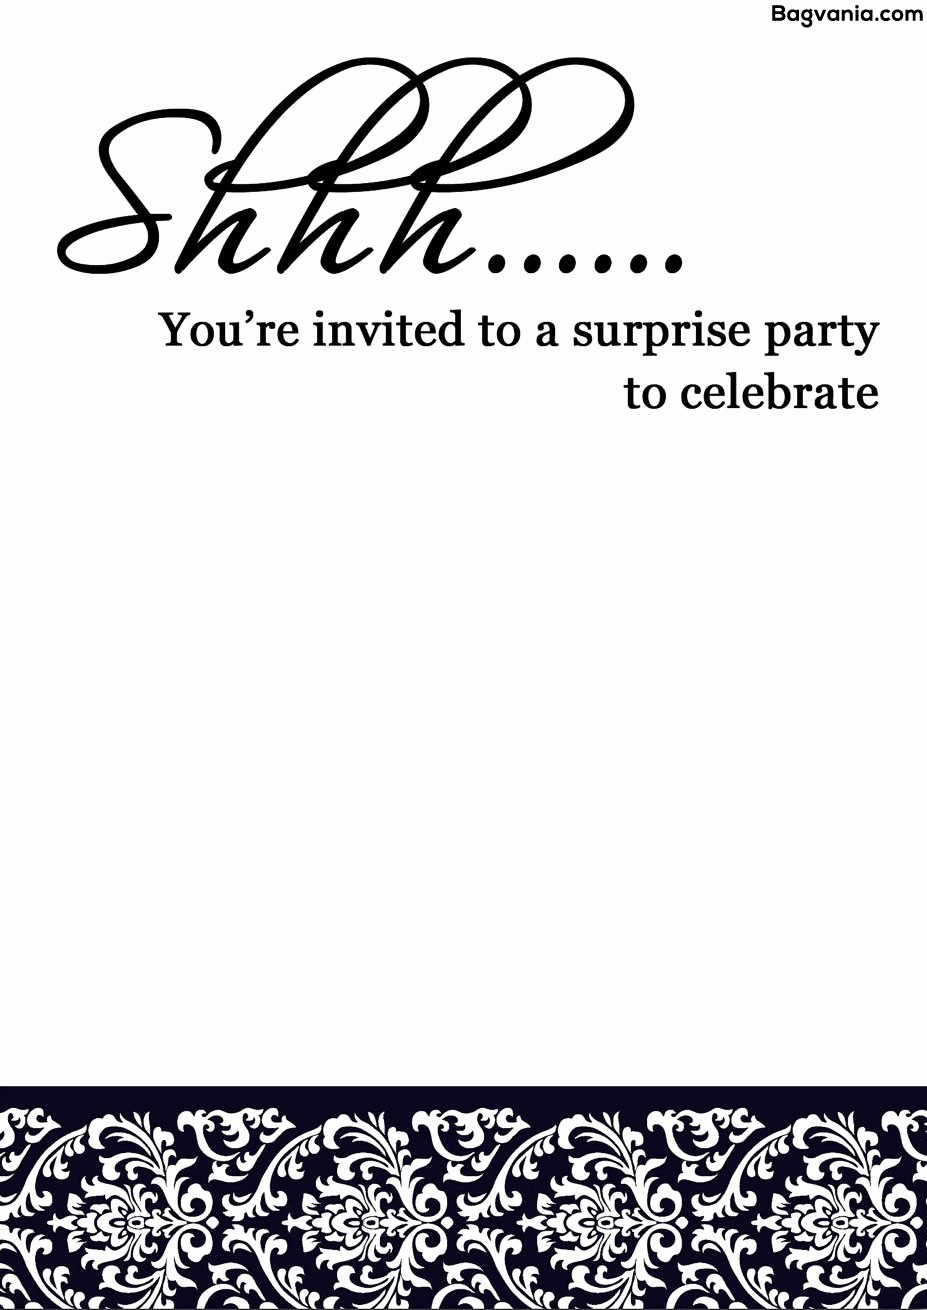 Surprise Birthday Party Invitation Template Lovely Free Printable Surprise Birthday Invitations – Bagvania